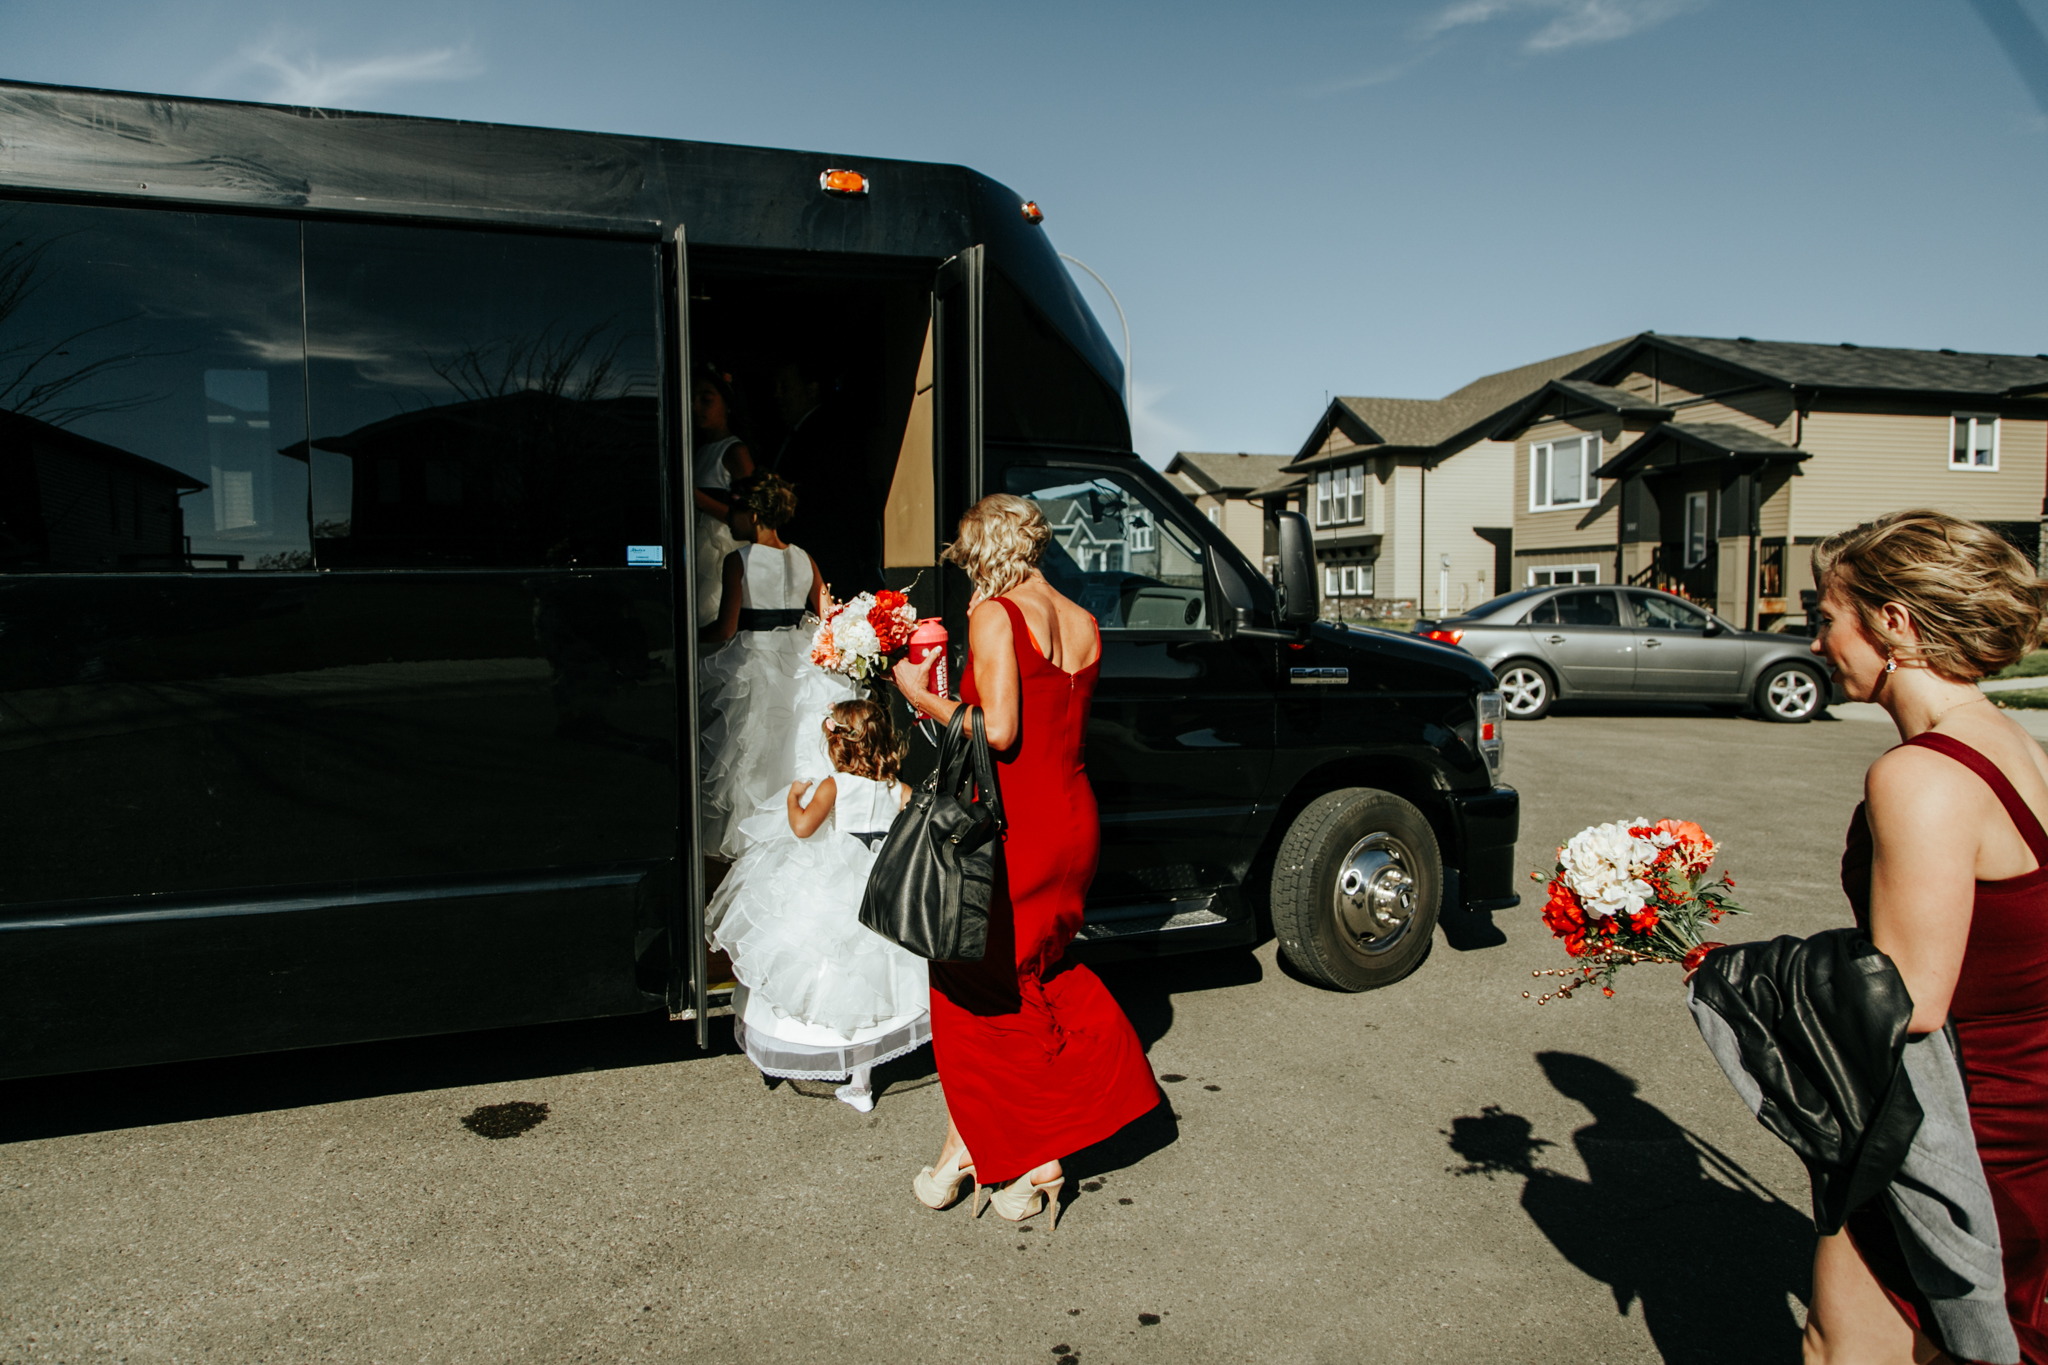 lethbridge-wedding-photographer-love-and-be-loved-photography-bride-prep-photo-image-picture-17.jpg